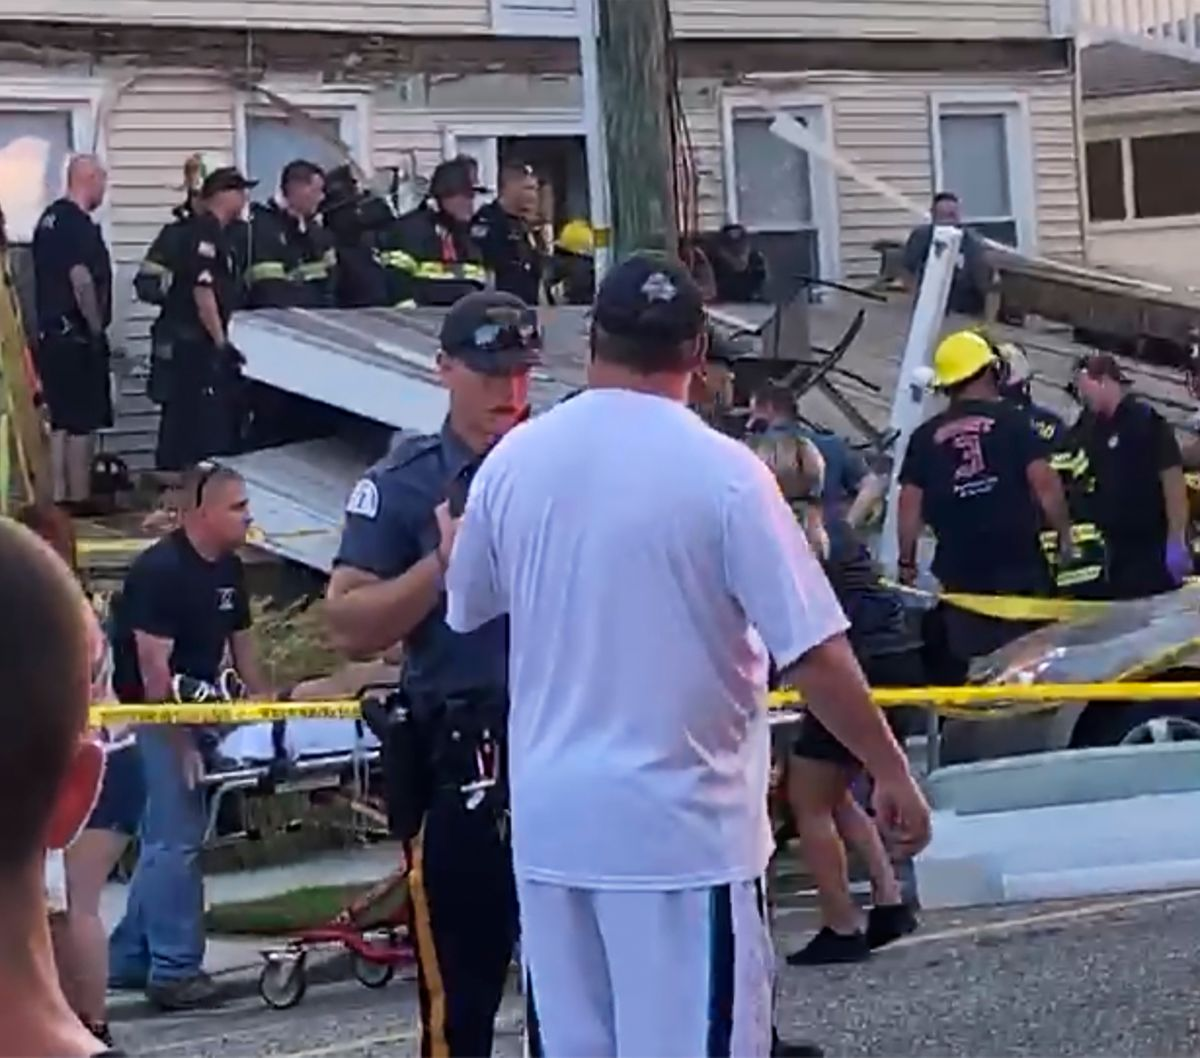 Collapsed deck in New Jersey injures at least 21